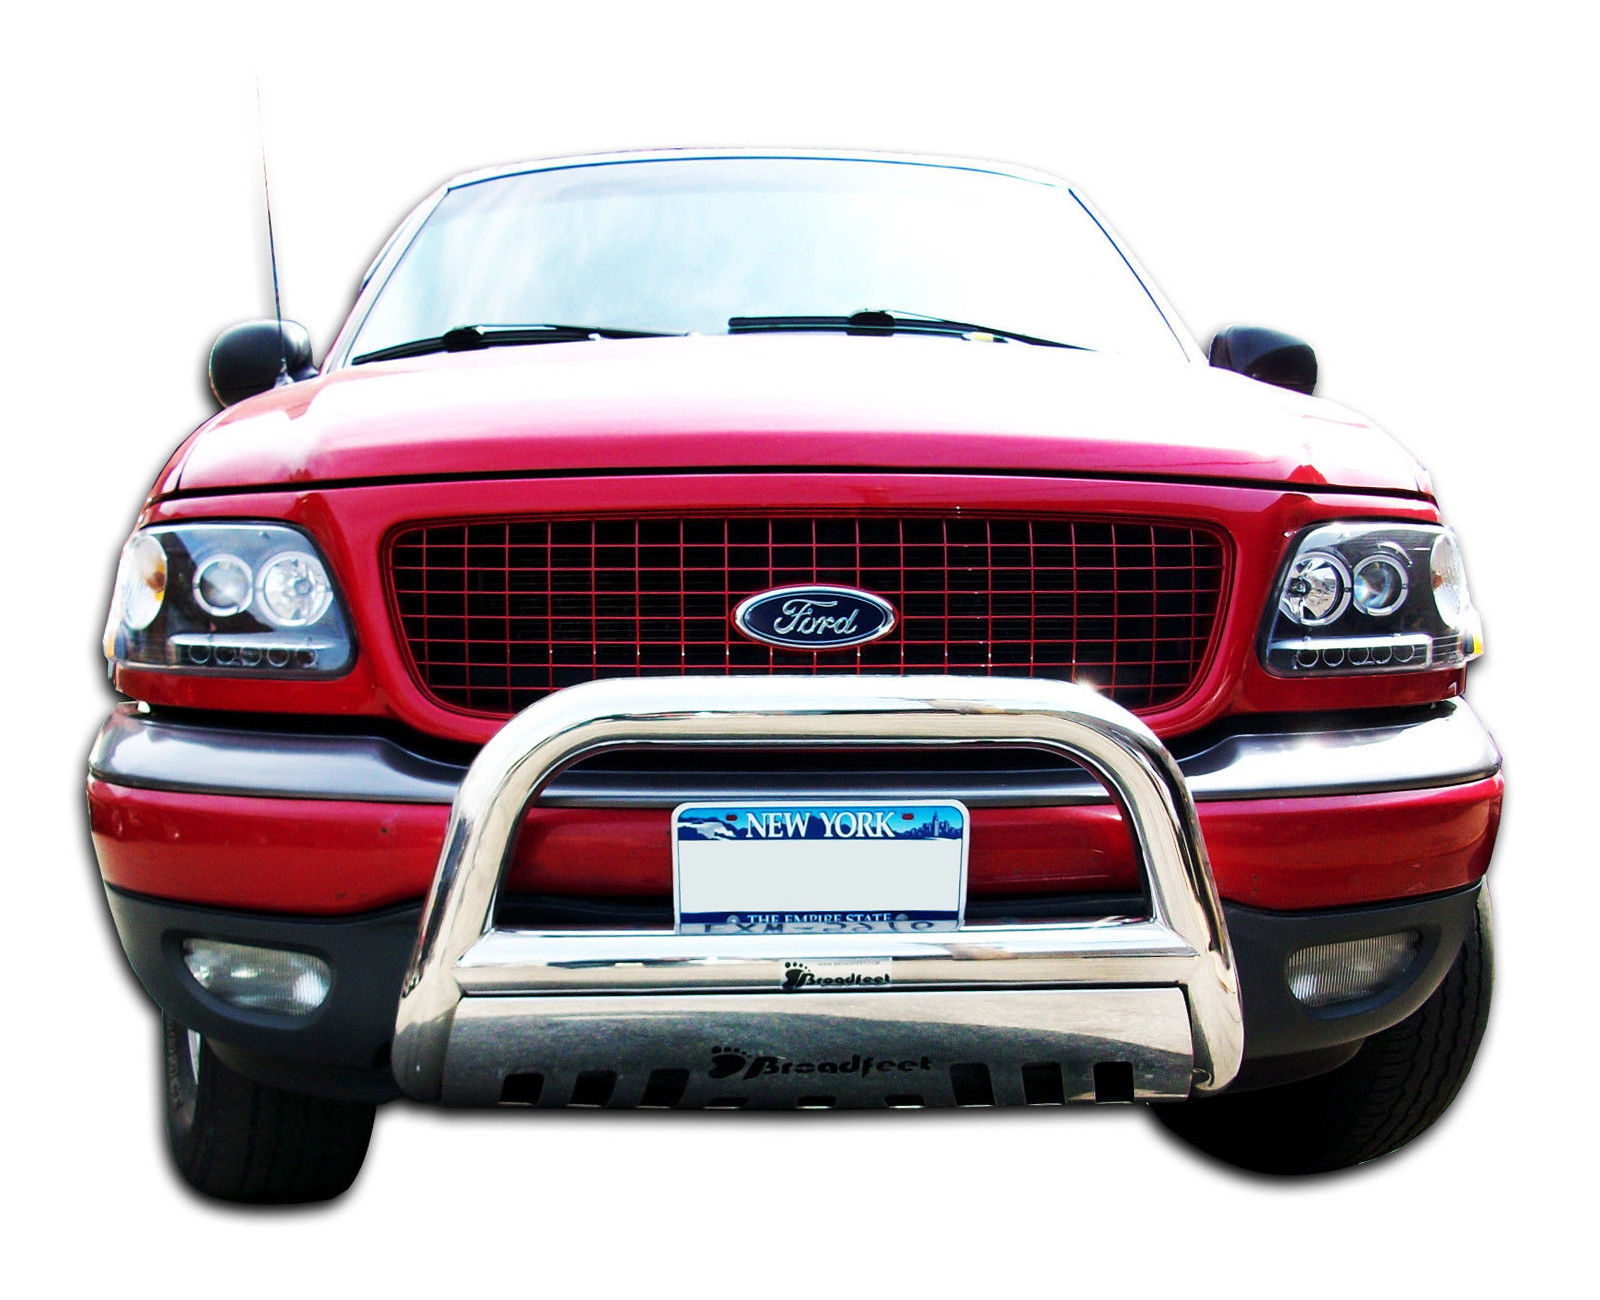 Ford Expedition Bumper Guard : Broadfeet bull bar front bumper guard for ford